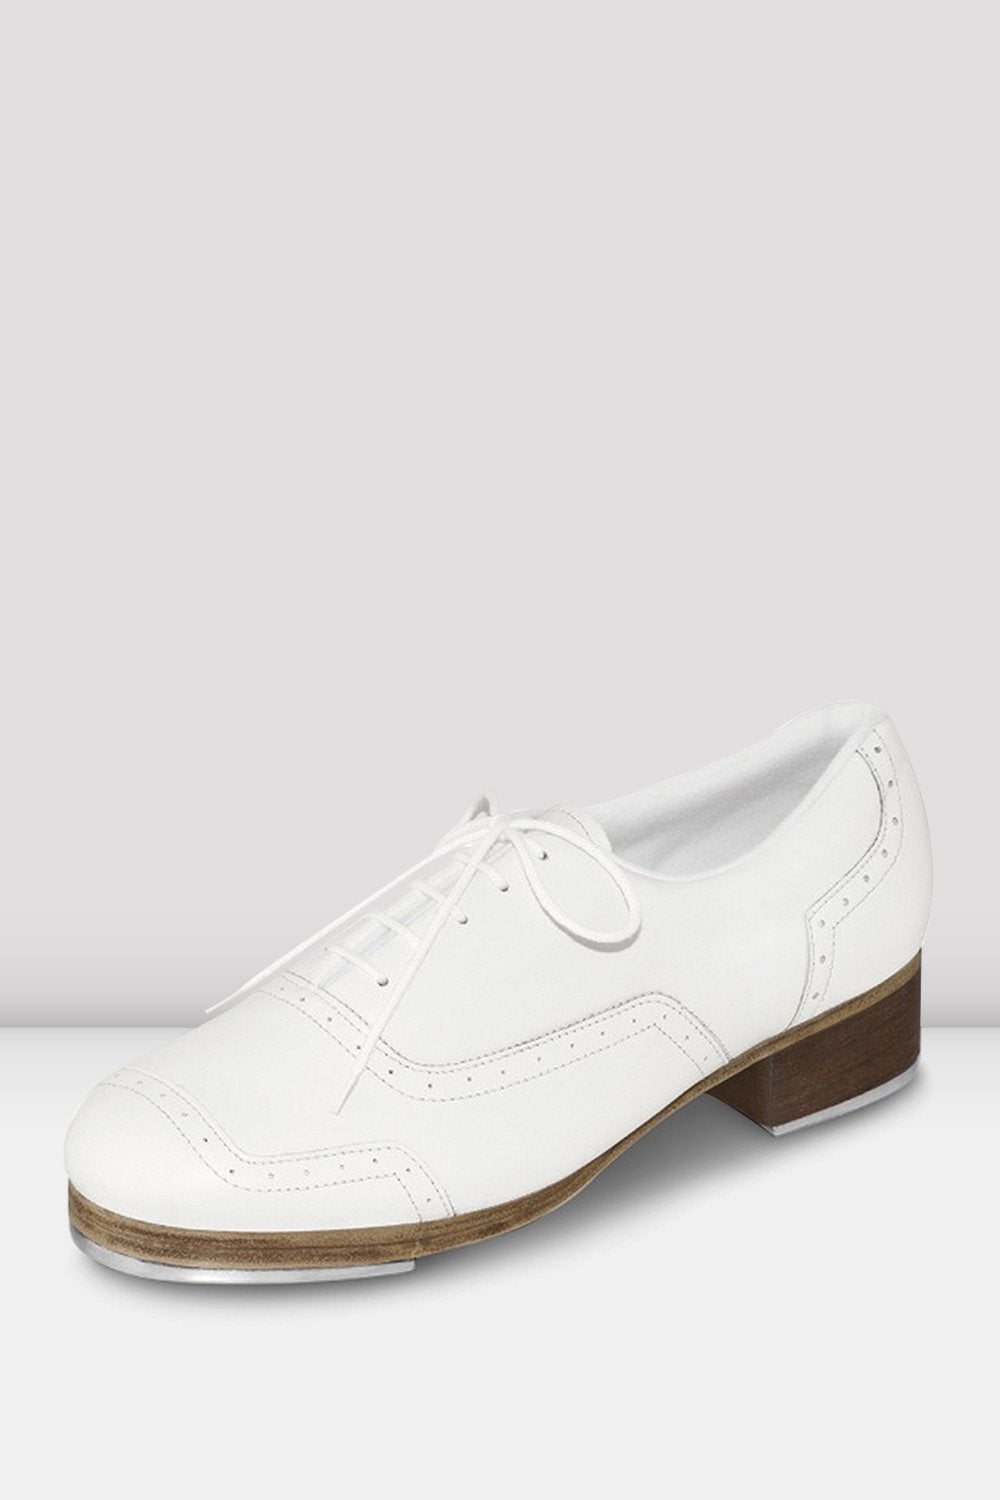 White leather Bloch Ladies Jason Samuels Smith Tap Shoes single shoe side view focus on toe of shoe